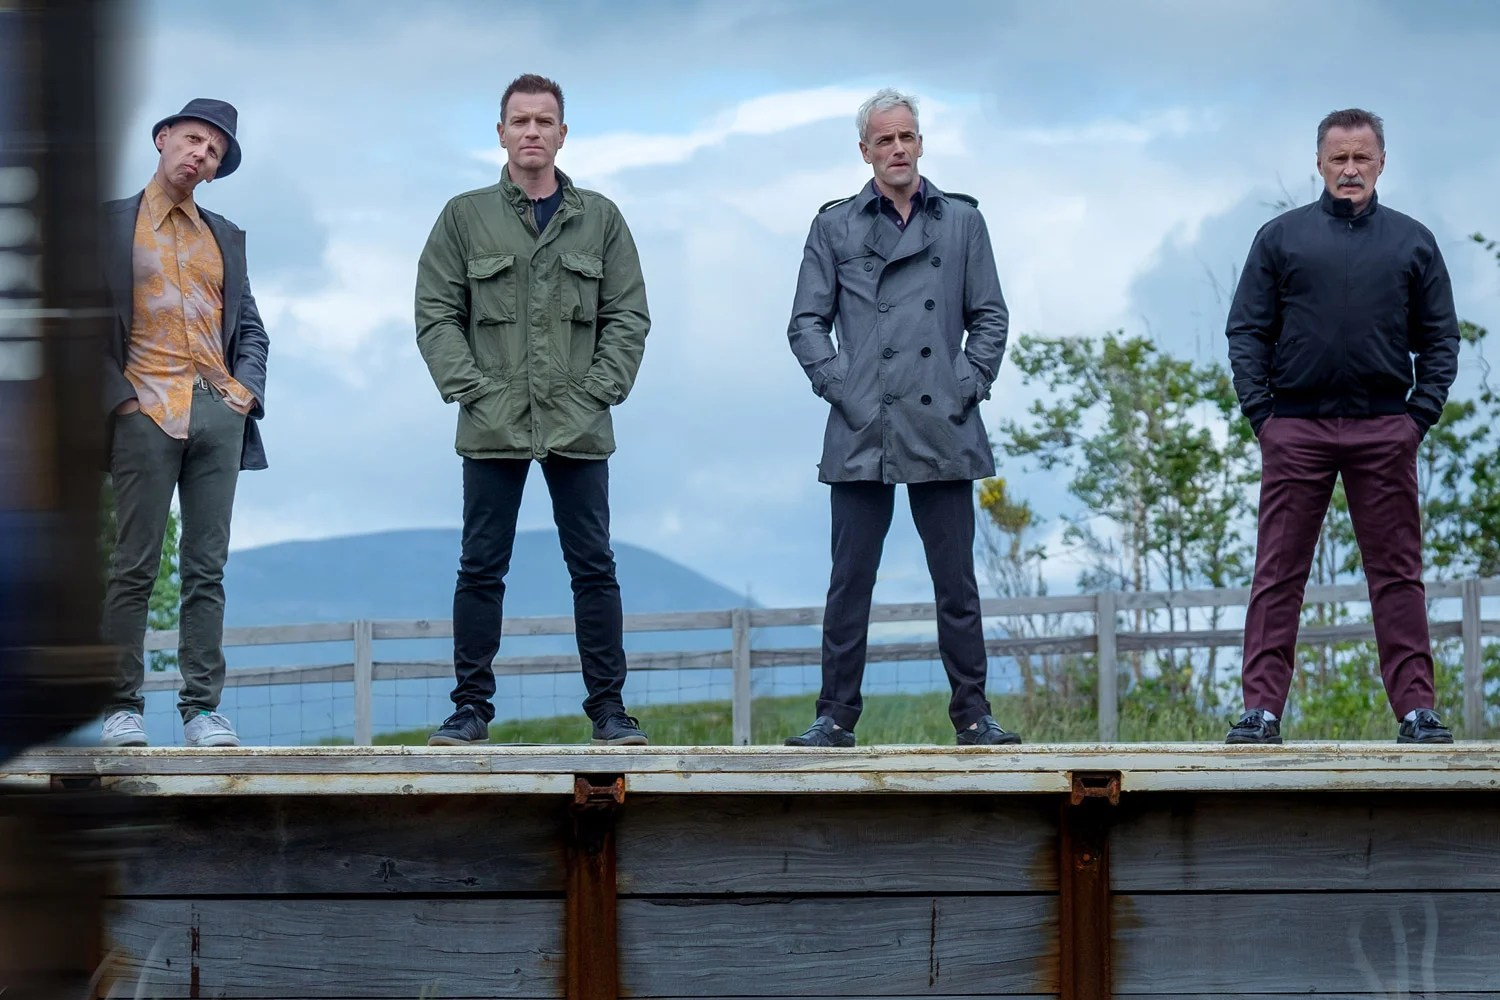 Trainspotting 2 Teaser Trailer First Look At Ewan McGregor In Action London Evening Standard